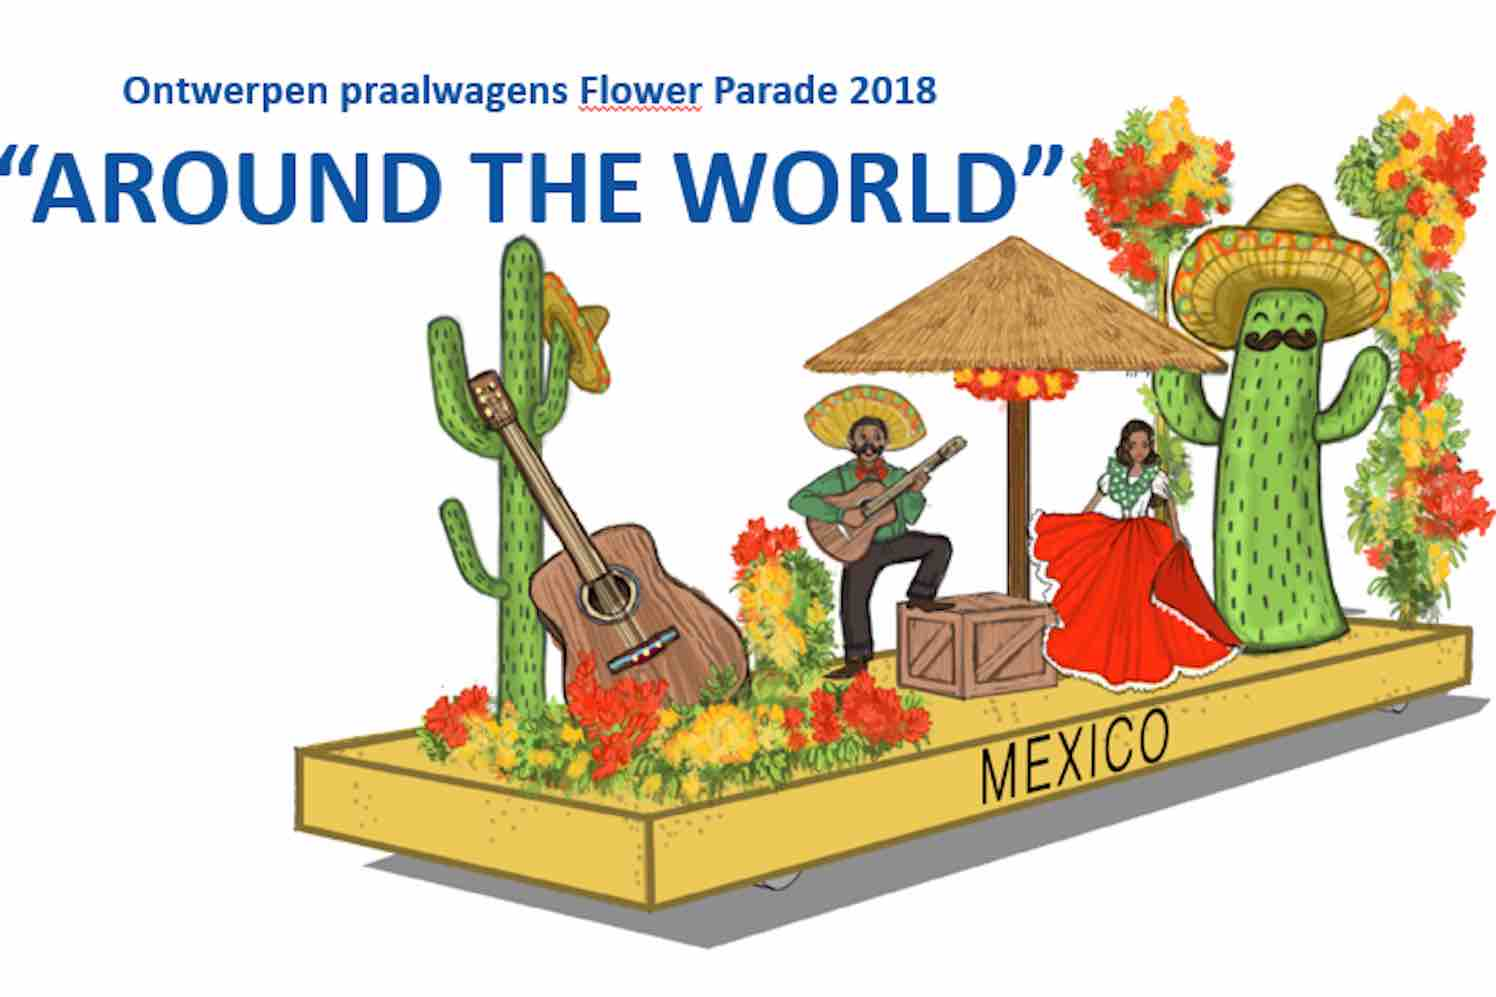 Around the World thema Flower Parade Rijnsburg